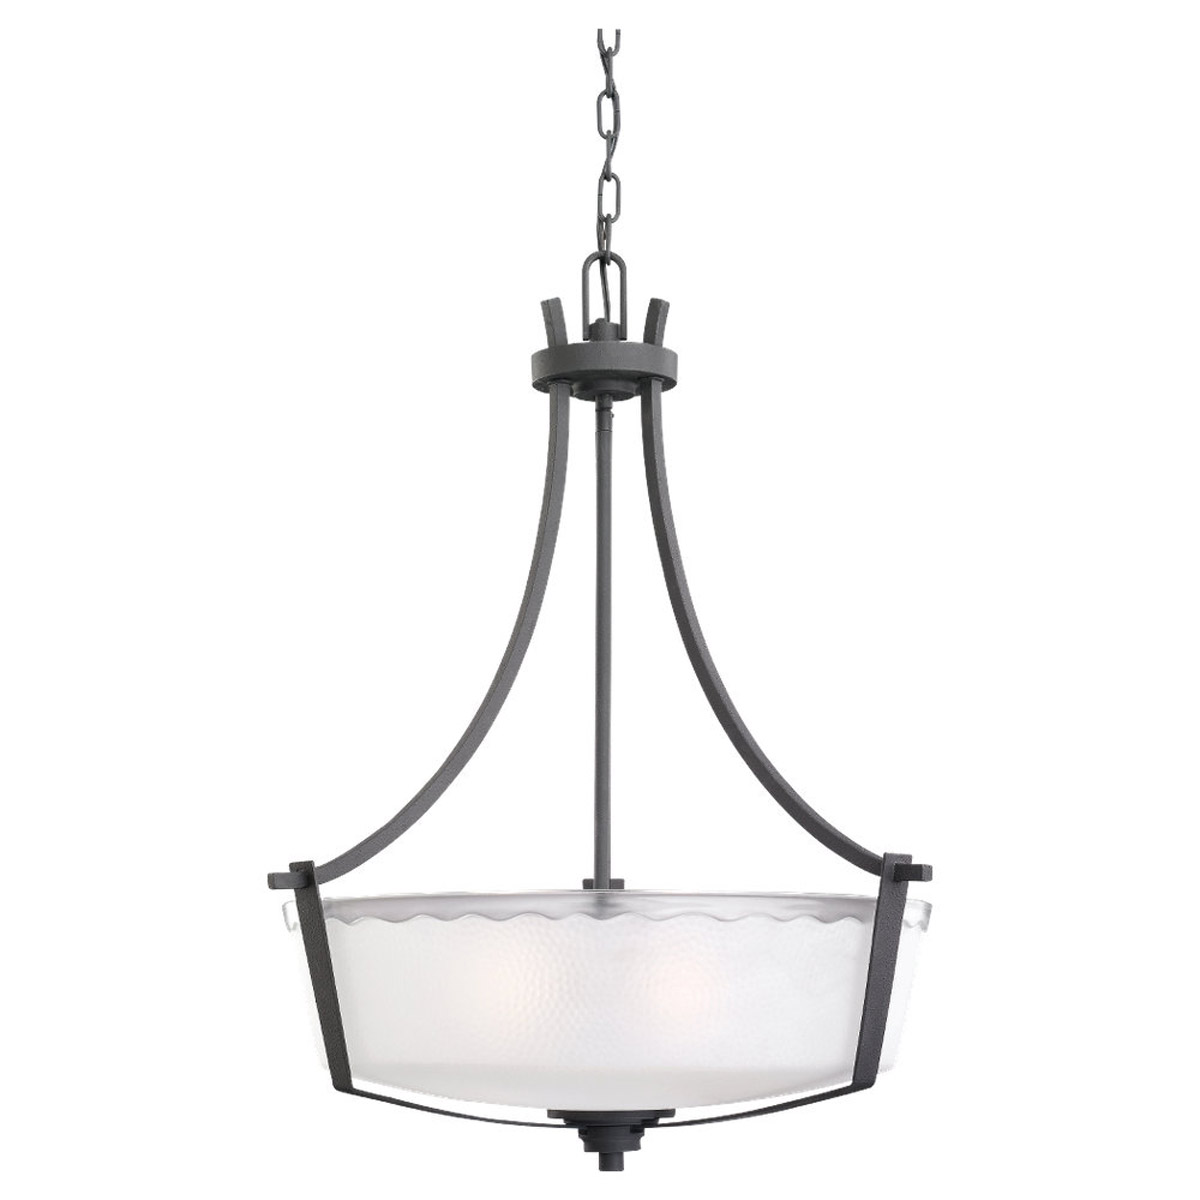 Sea Gull Lighting 59th Street 3 Light Pendant in Blacksmith 65641-839 photo